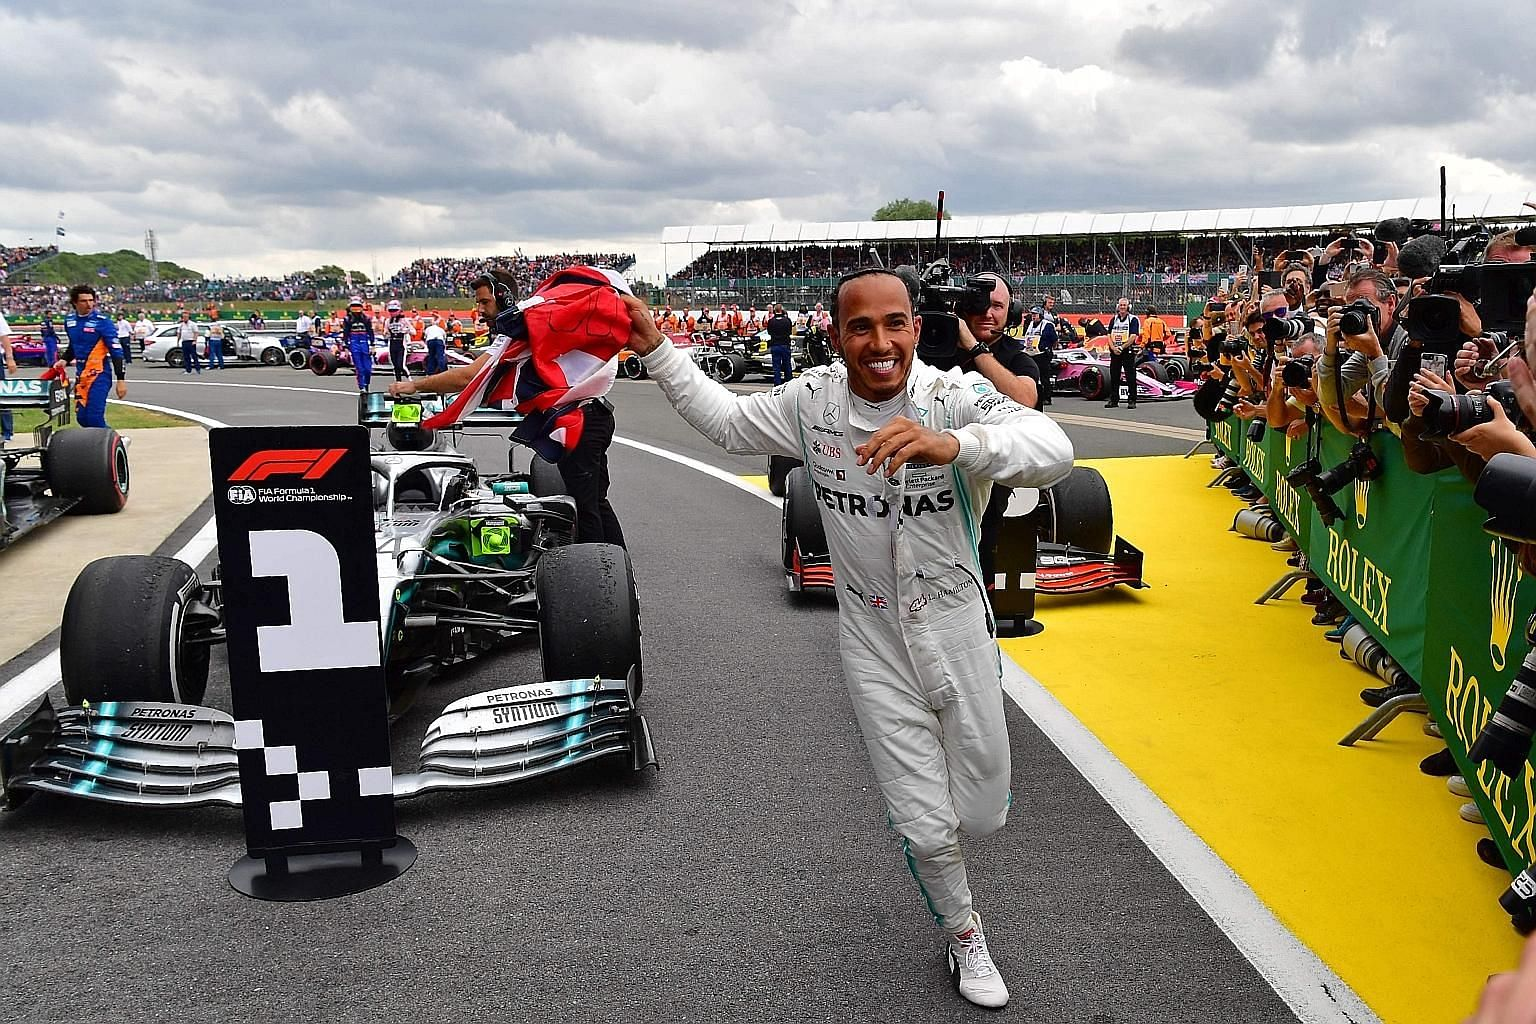 Lewis Hamilton running to celebrate with his team after winning the British Grand Prix at Silverstone yesterday. His Mercedes teammate Valtteri Bottas, who started on pole, looked set for victory until Hamilton pitted under the safety car and gained the a